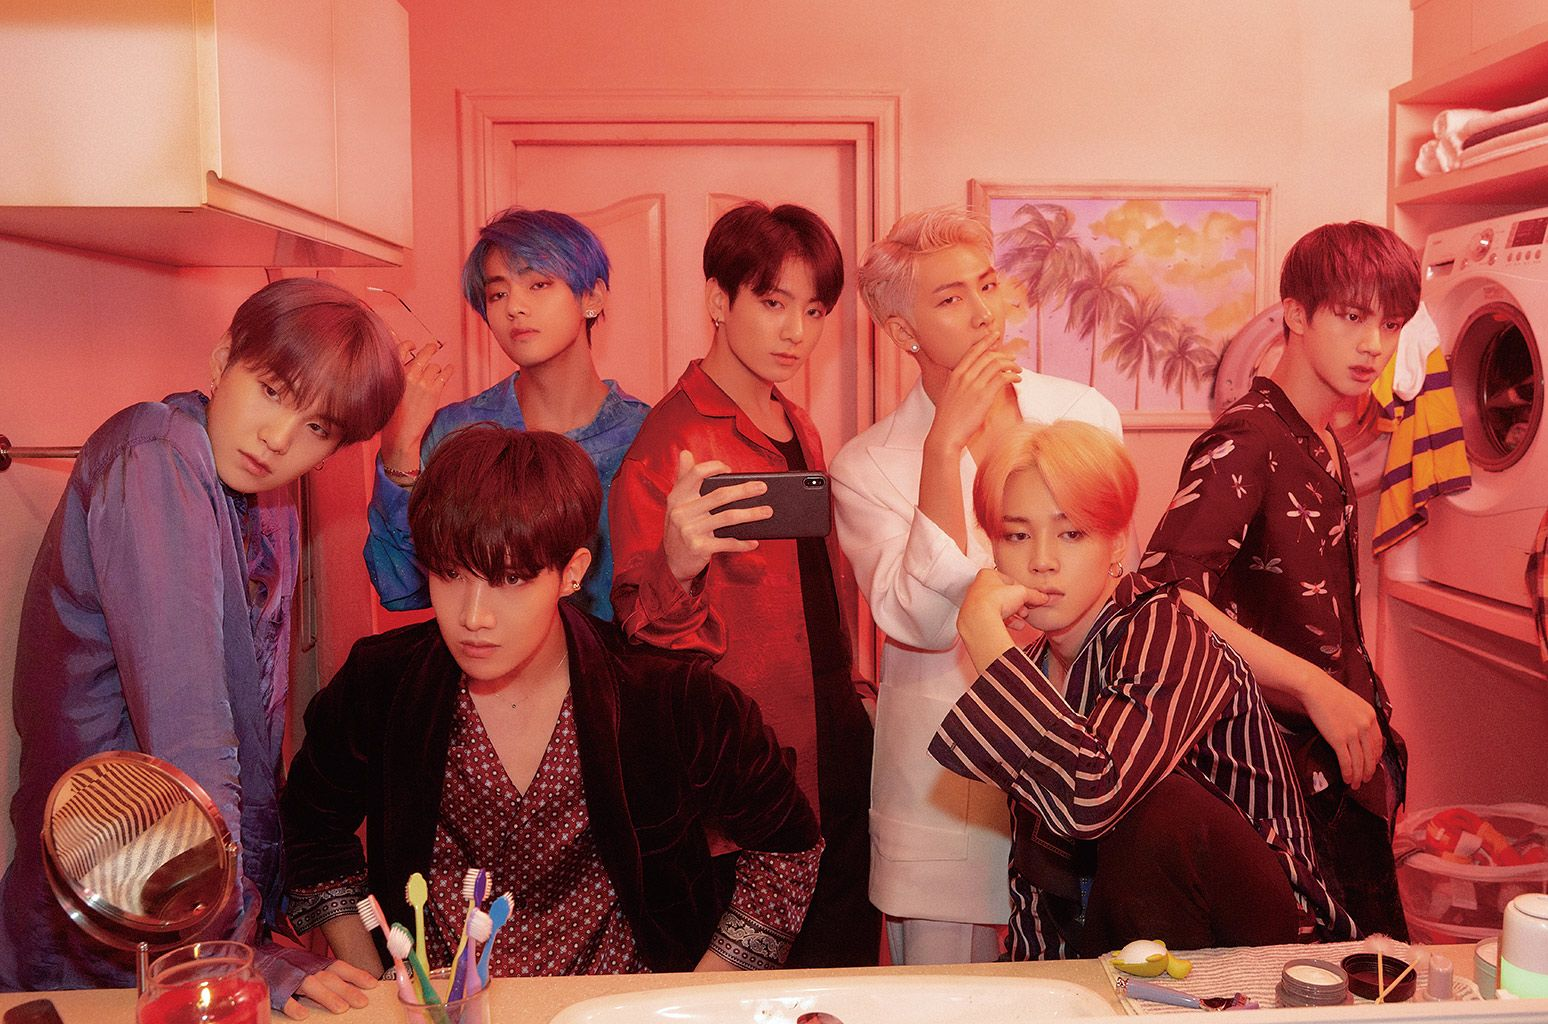 BTS, Sandra Oh, Darren Criss and More on A100 List of Influential Asian Americans | Billboard